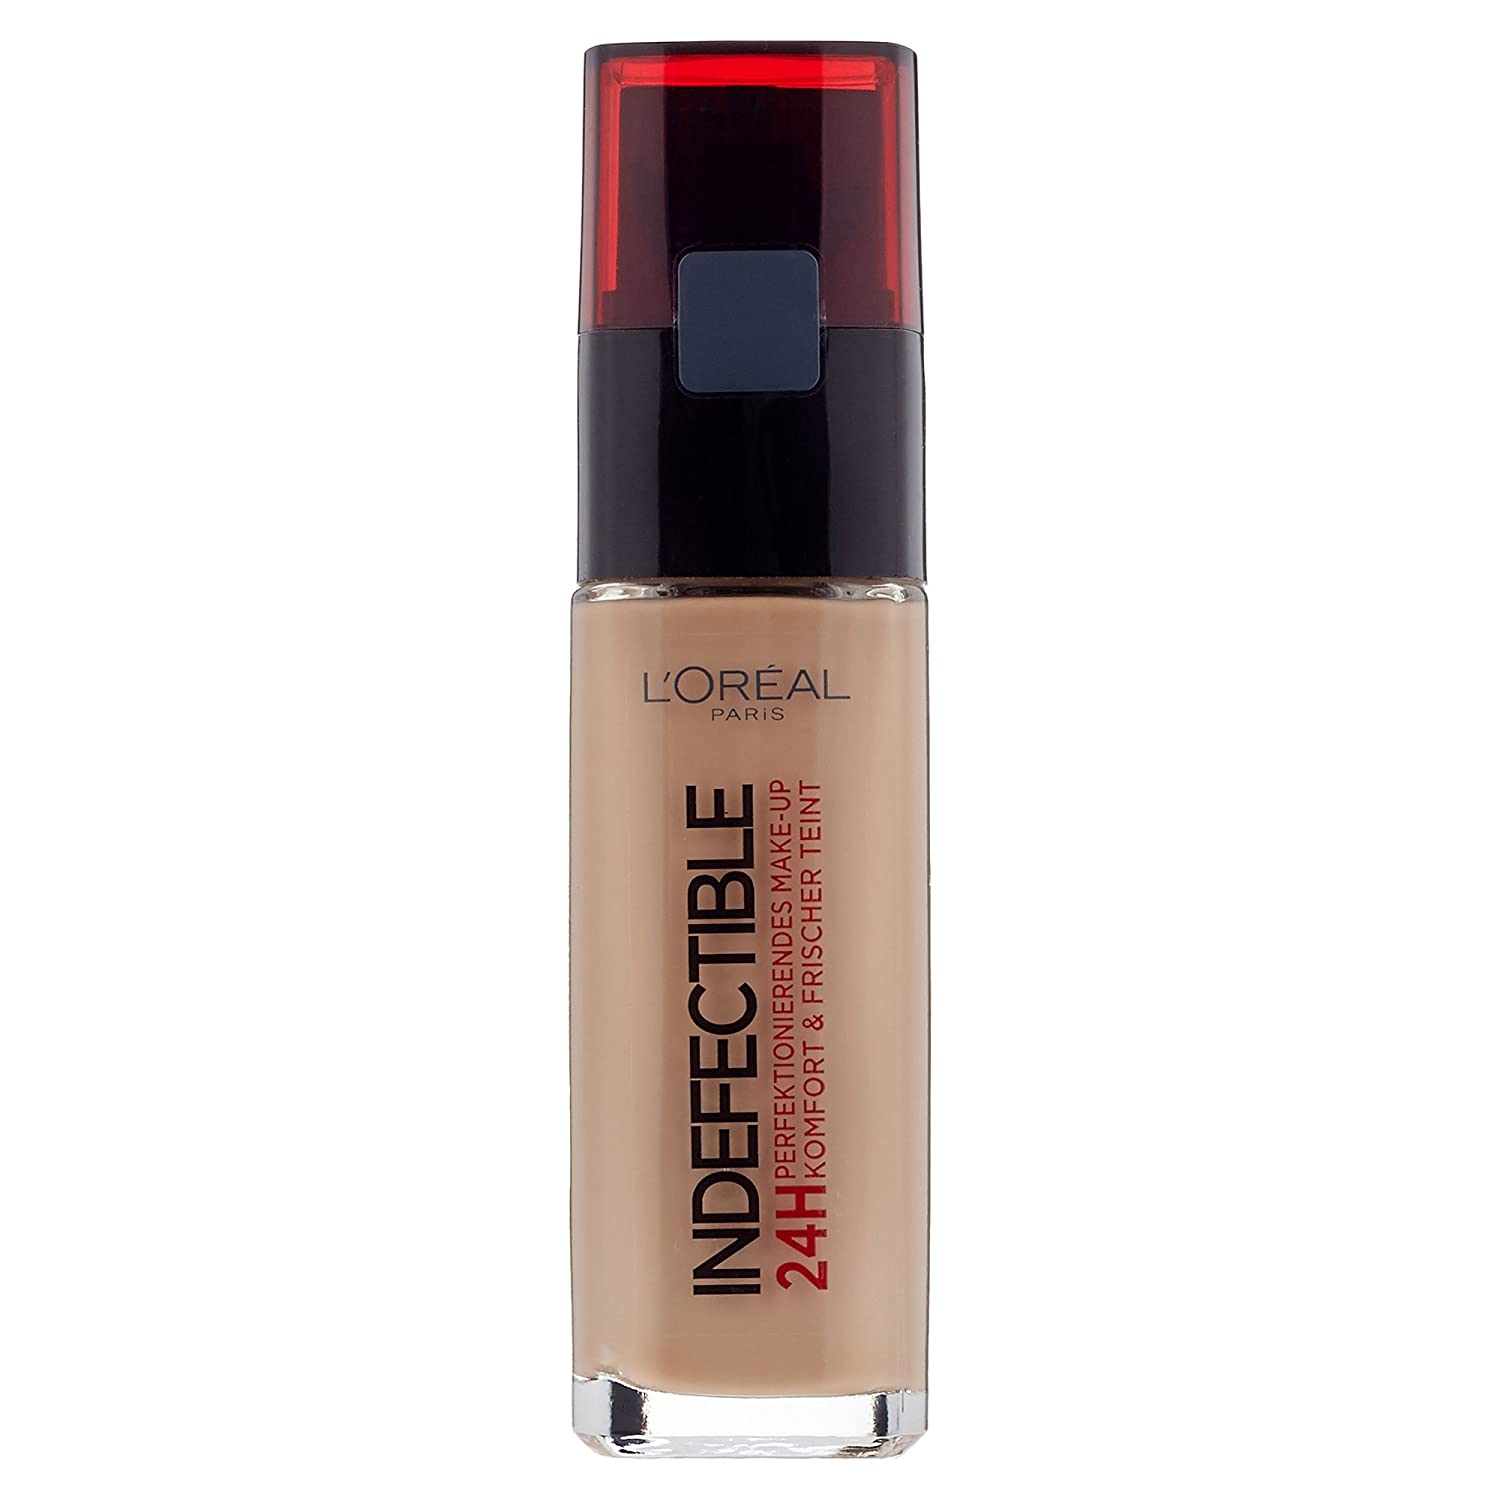 L'Oréal Paris Indefectible Make Up, 145 Rose Beige - Make Up 24 ...